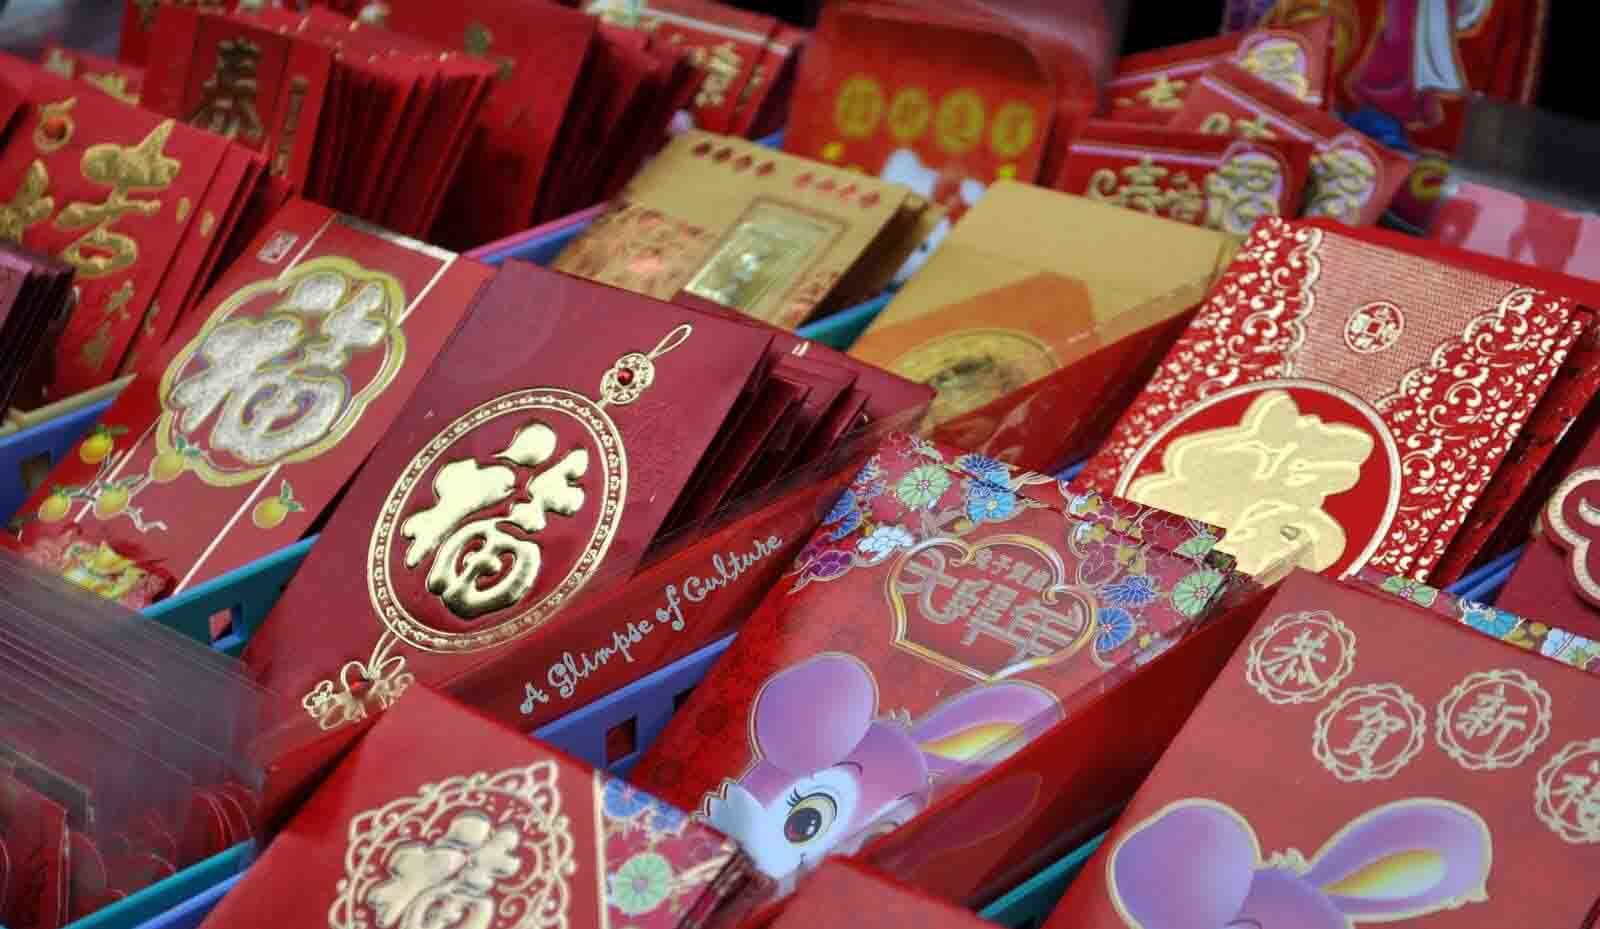 Les hongbao, une tradition chinoise